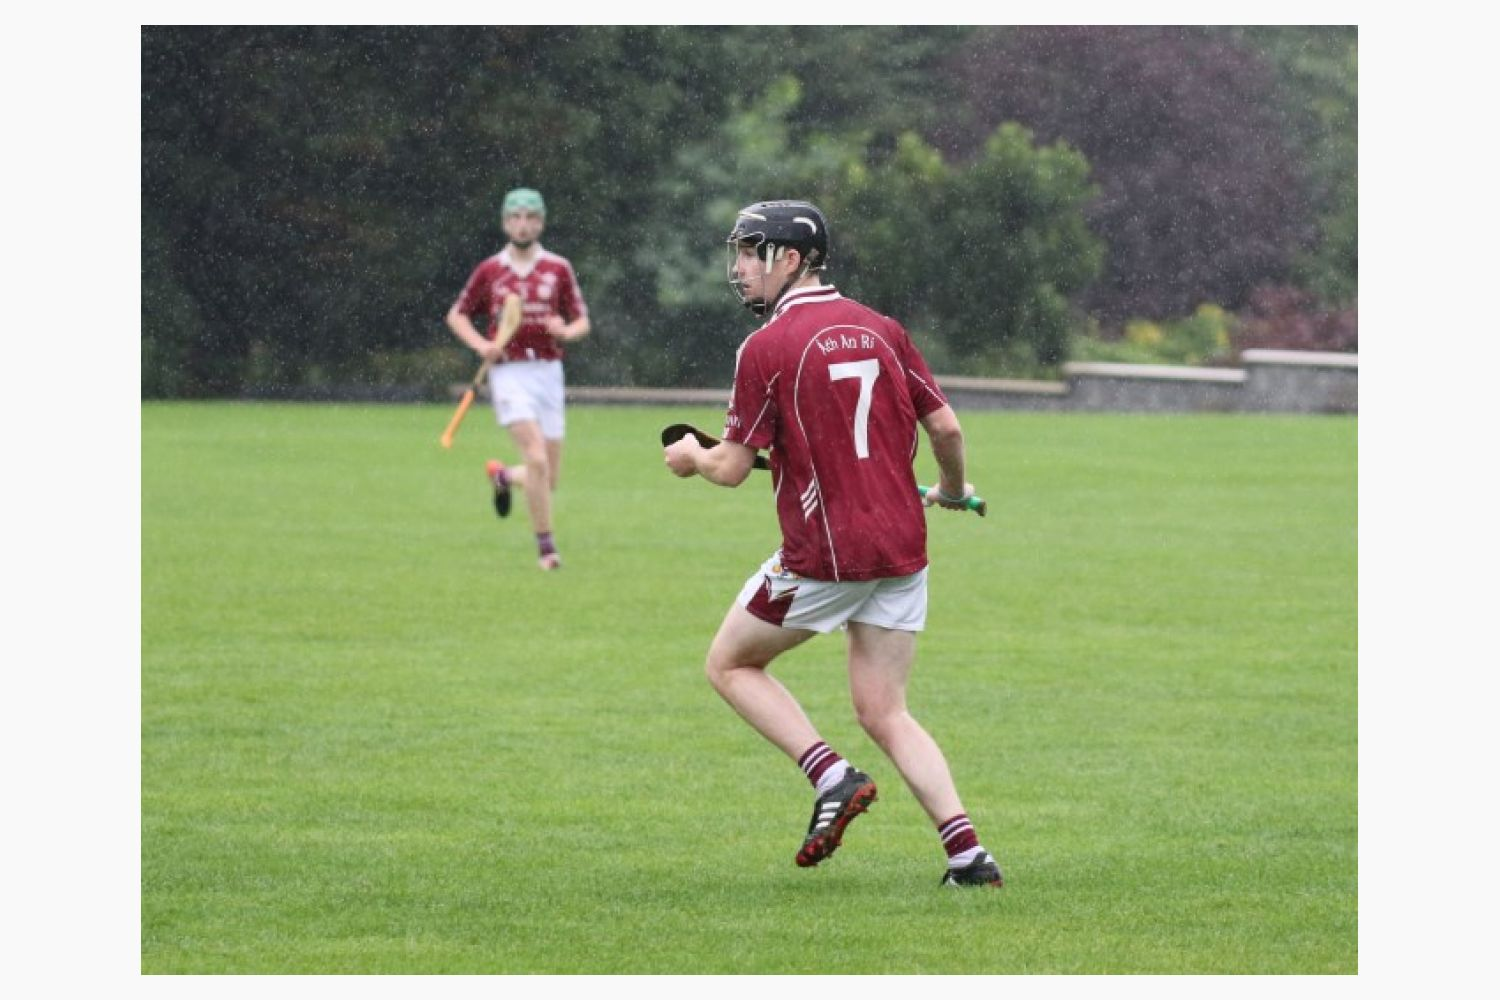 Applegreen All Ireland Hurling 7s Competition - This is the Day!!